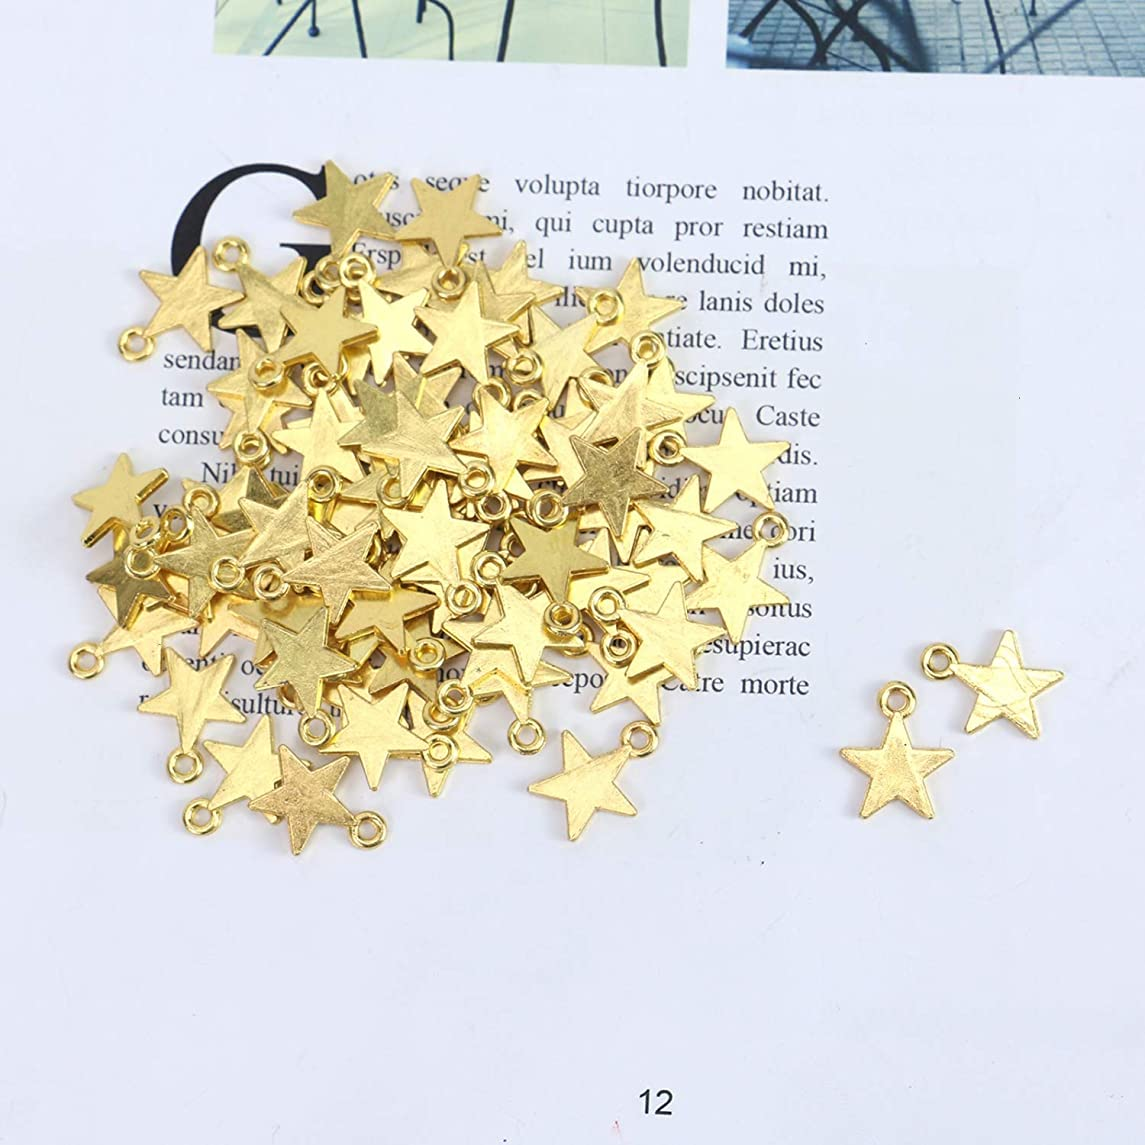 Monrocco 100 PCS Mini Star Charms 15 x 12 mm Polished Surface Vintage Antique Gold Alloy Star Charms DIY Jewelry Crafting Bracelet and Necklace Making